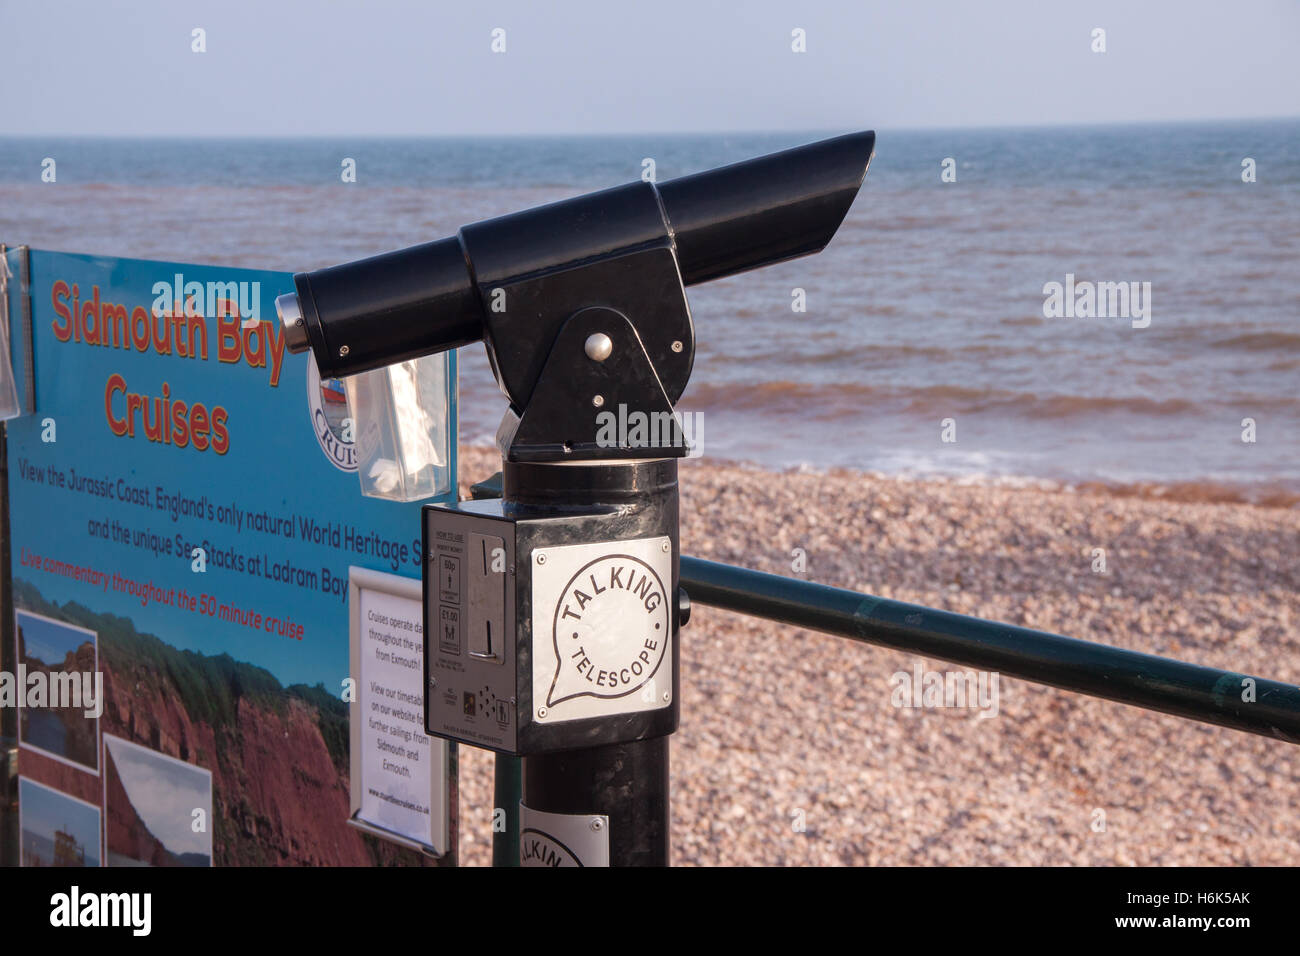 A talking telescope on the seafront at Sidmouth, Devon. It provides an audible interpretation of the view. - Stock Image